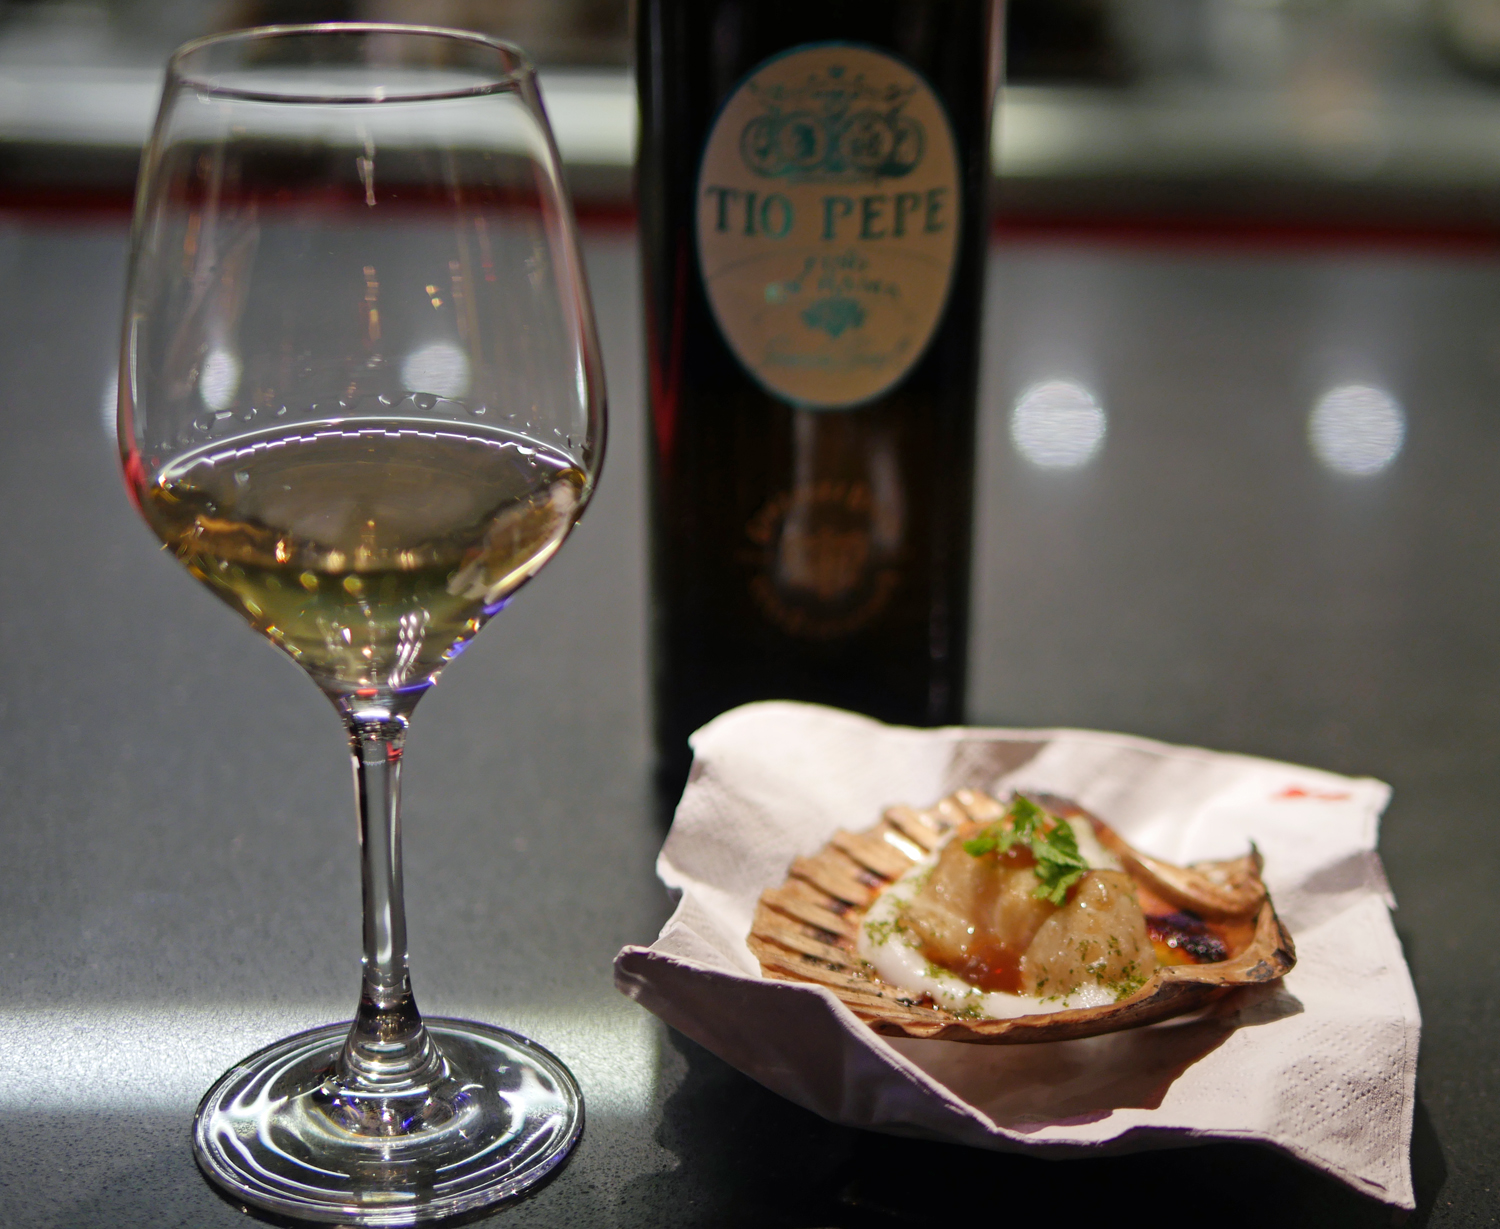 Tio Pepe Scallop Street XO Mayfair Restaurant